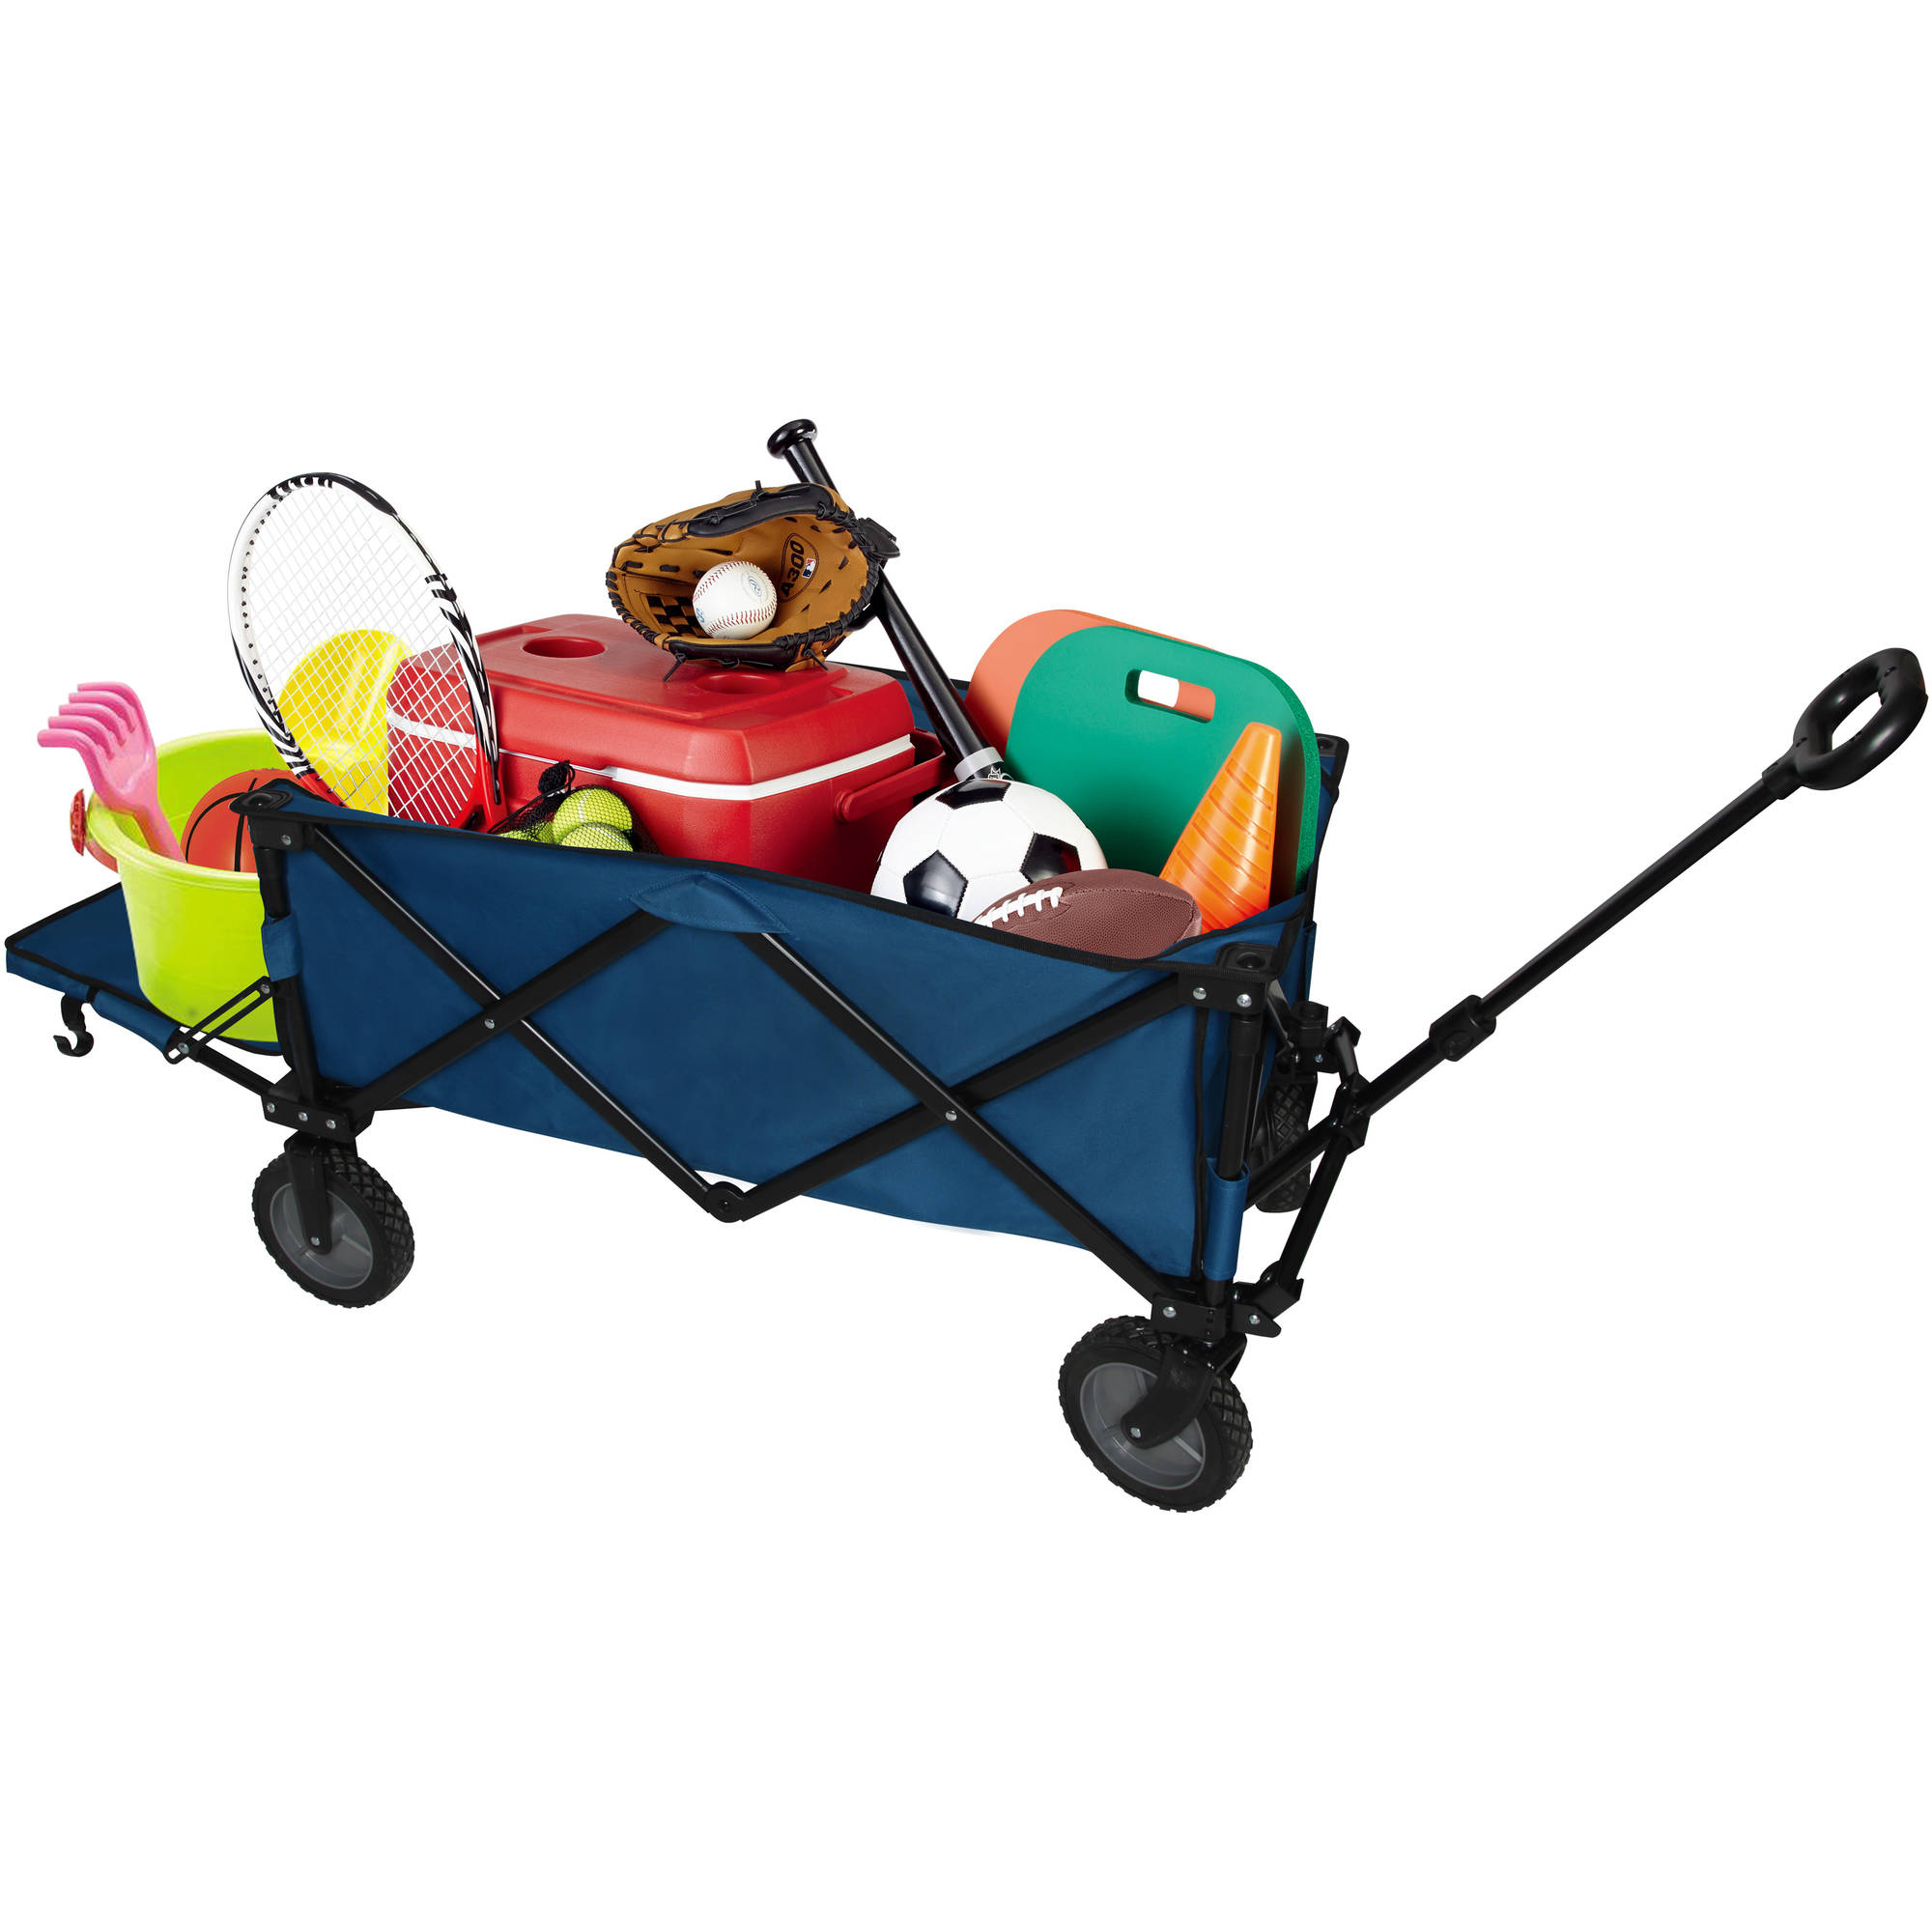 Ozark Trail Wagon with Tailgate, Blue